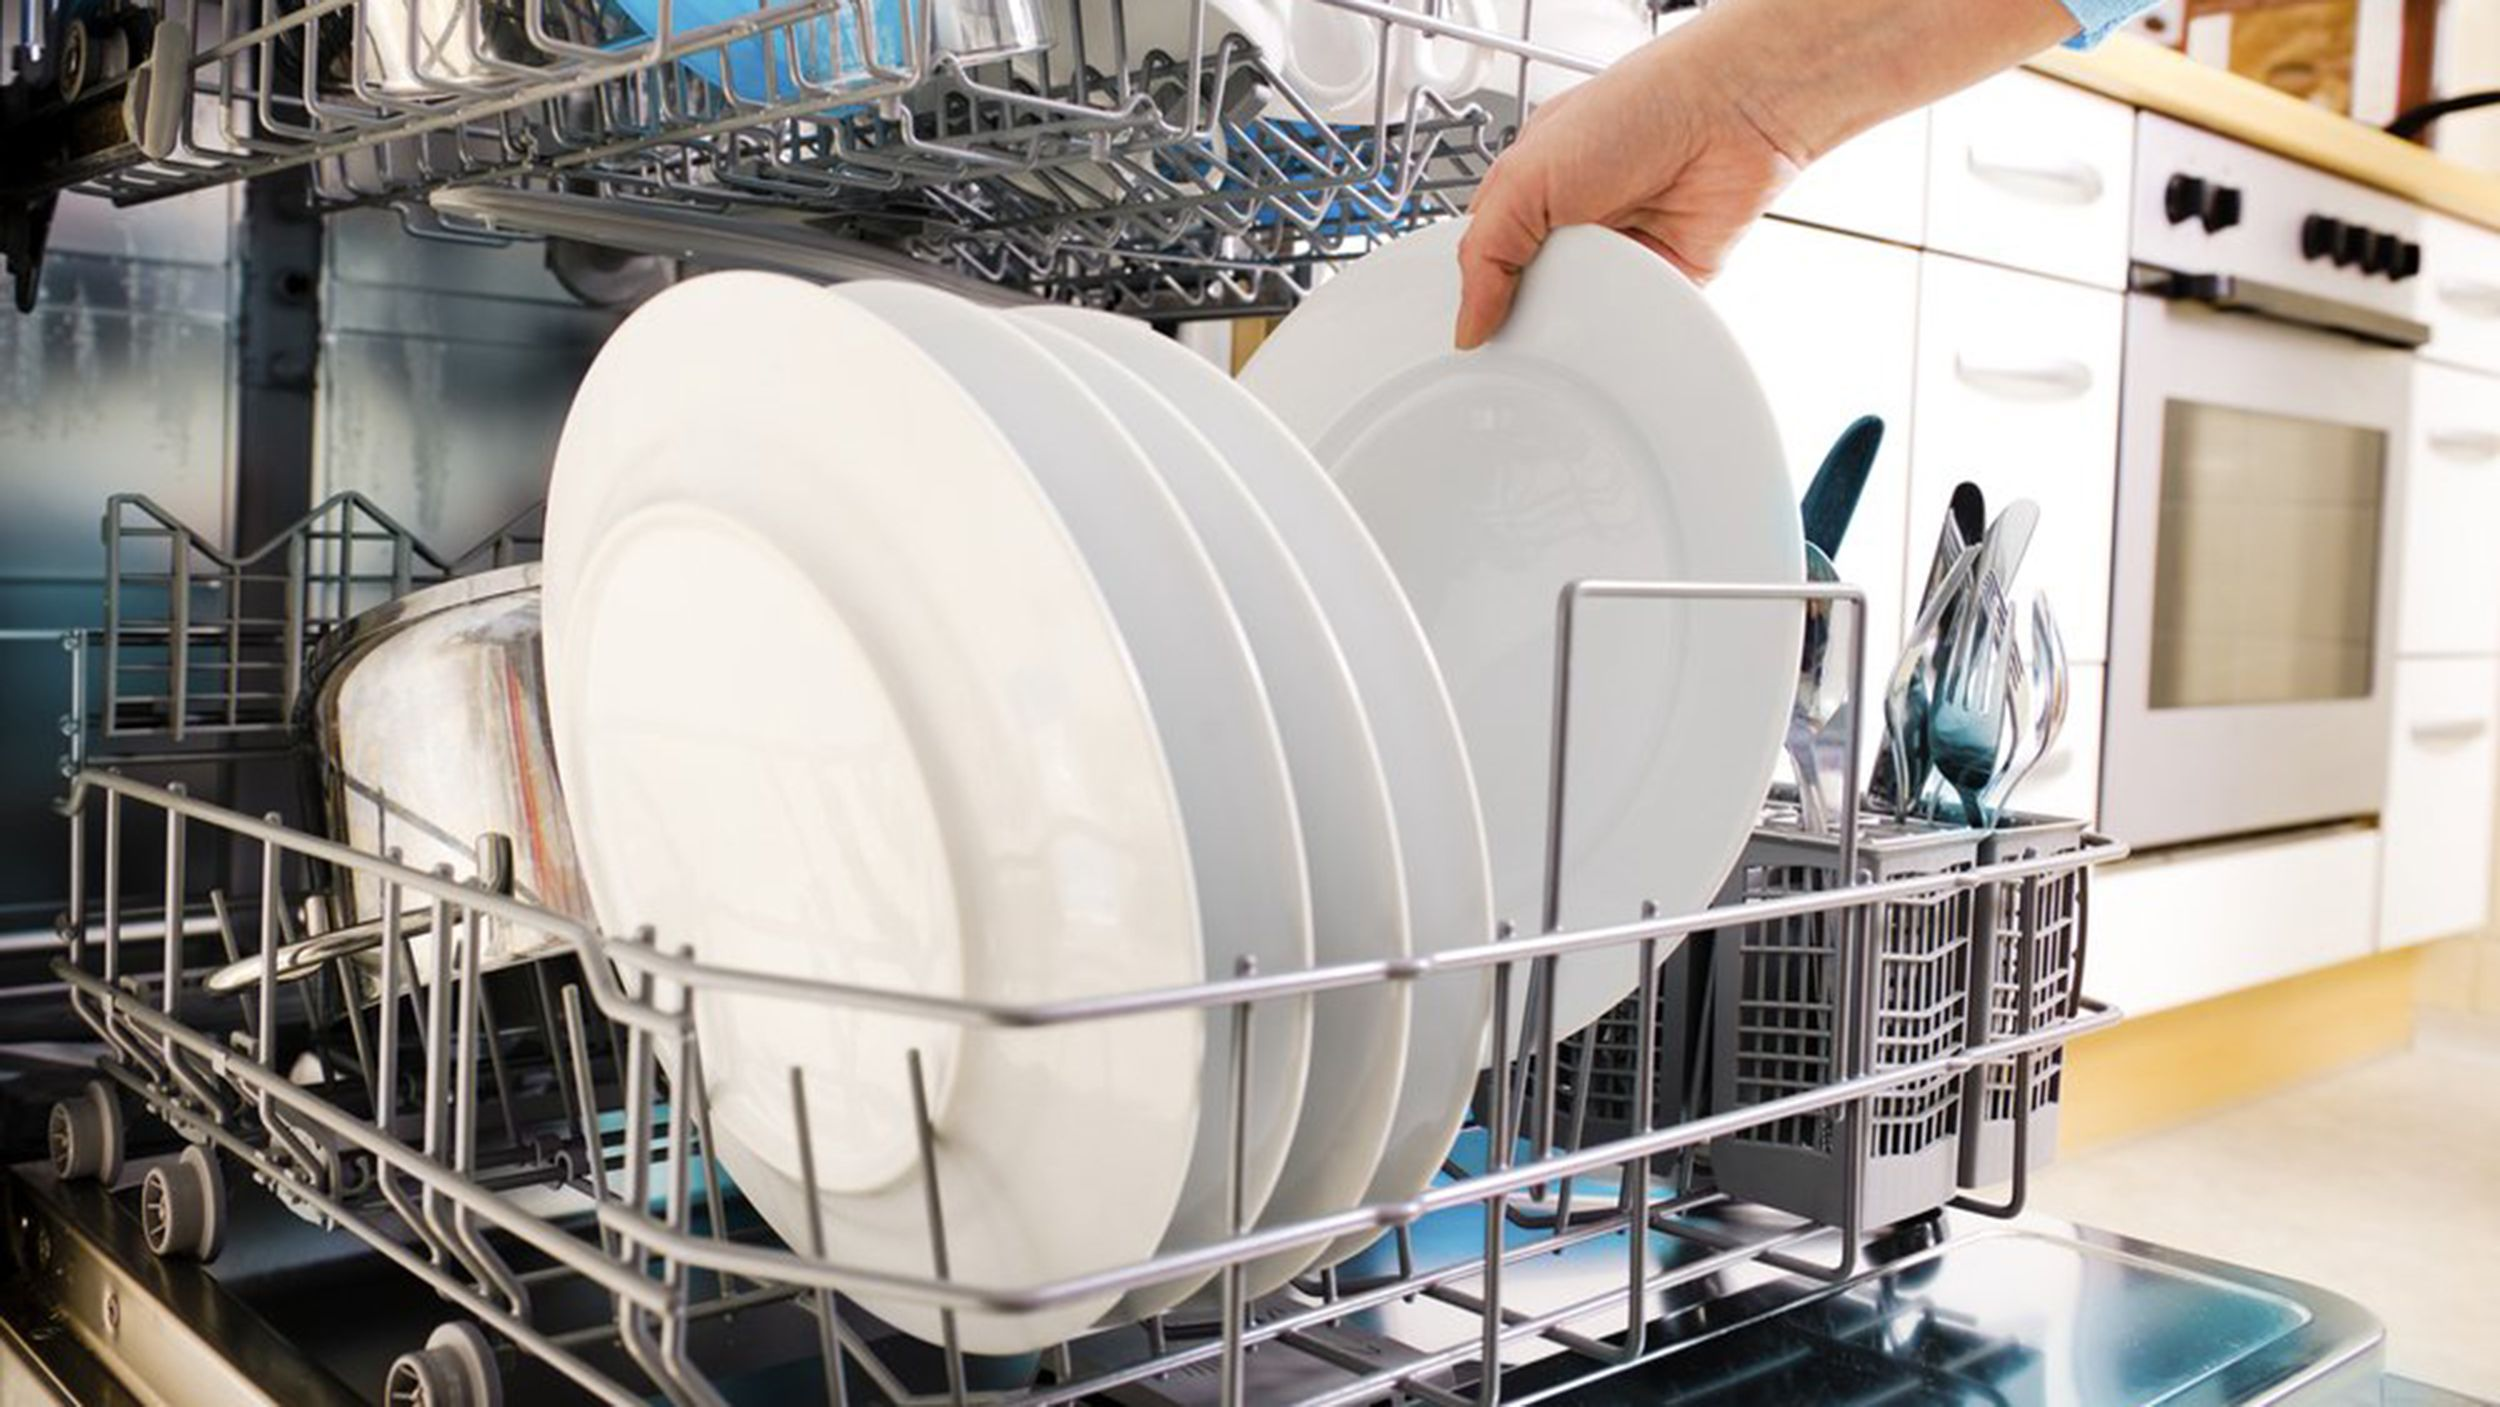 How often you should clean your dishwasher — and how to do